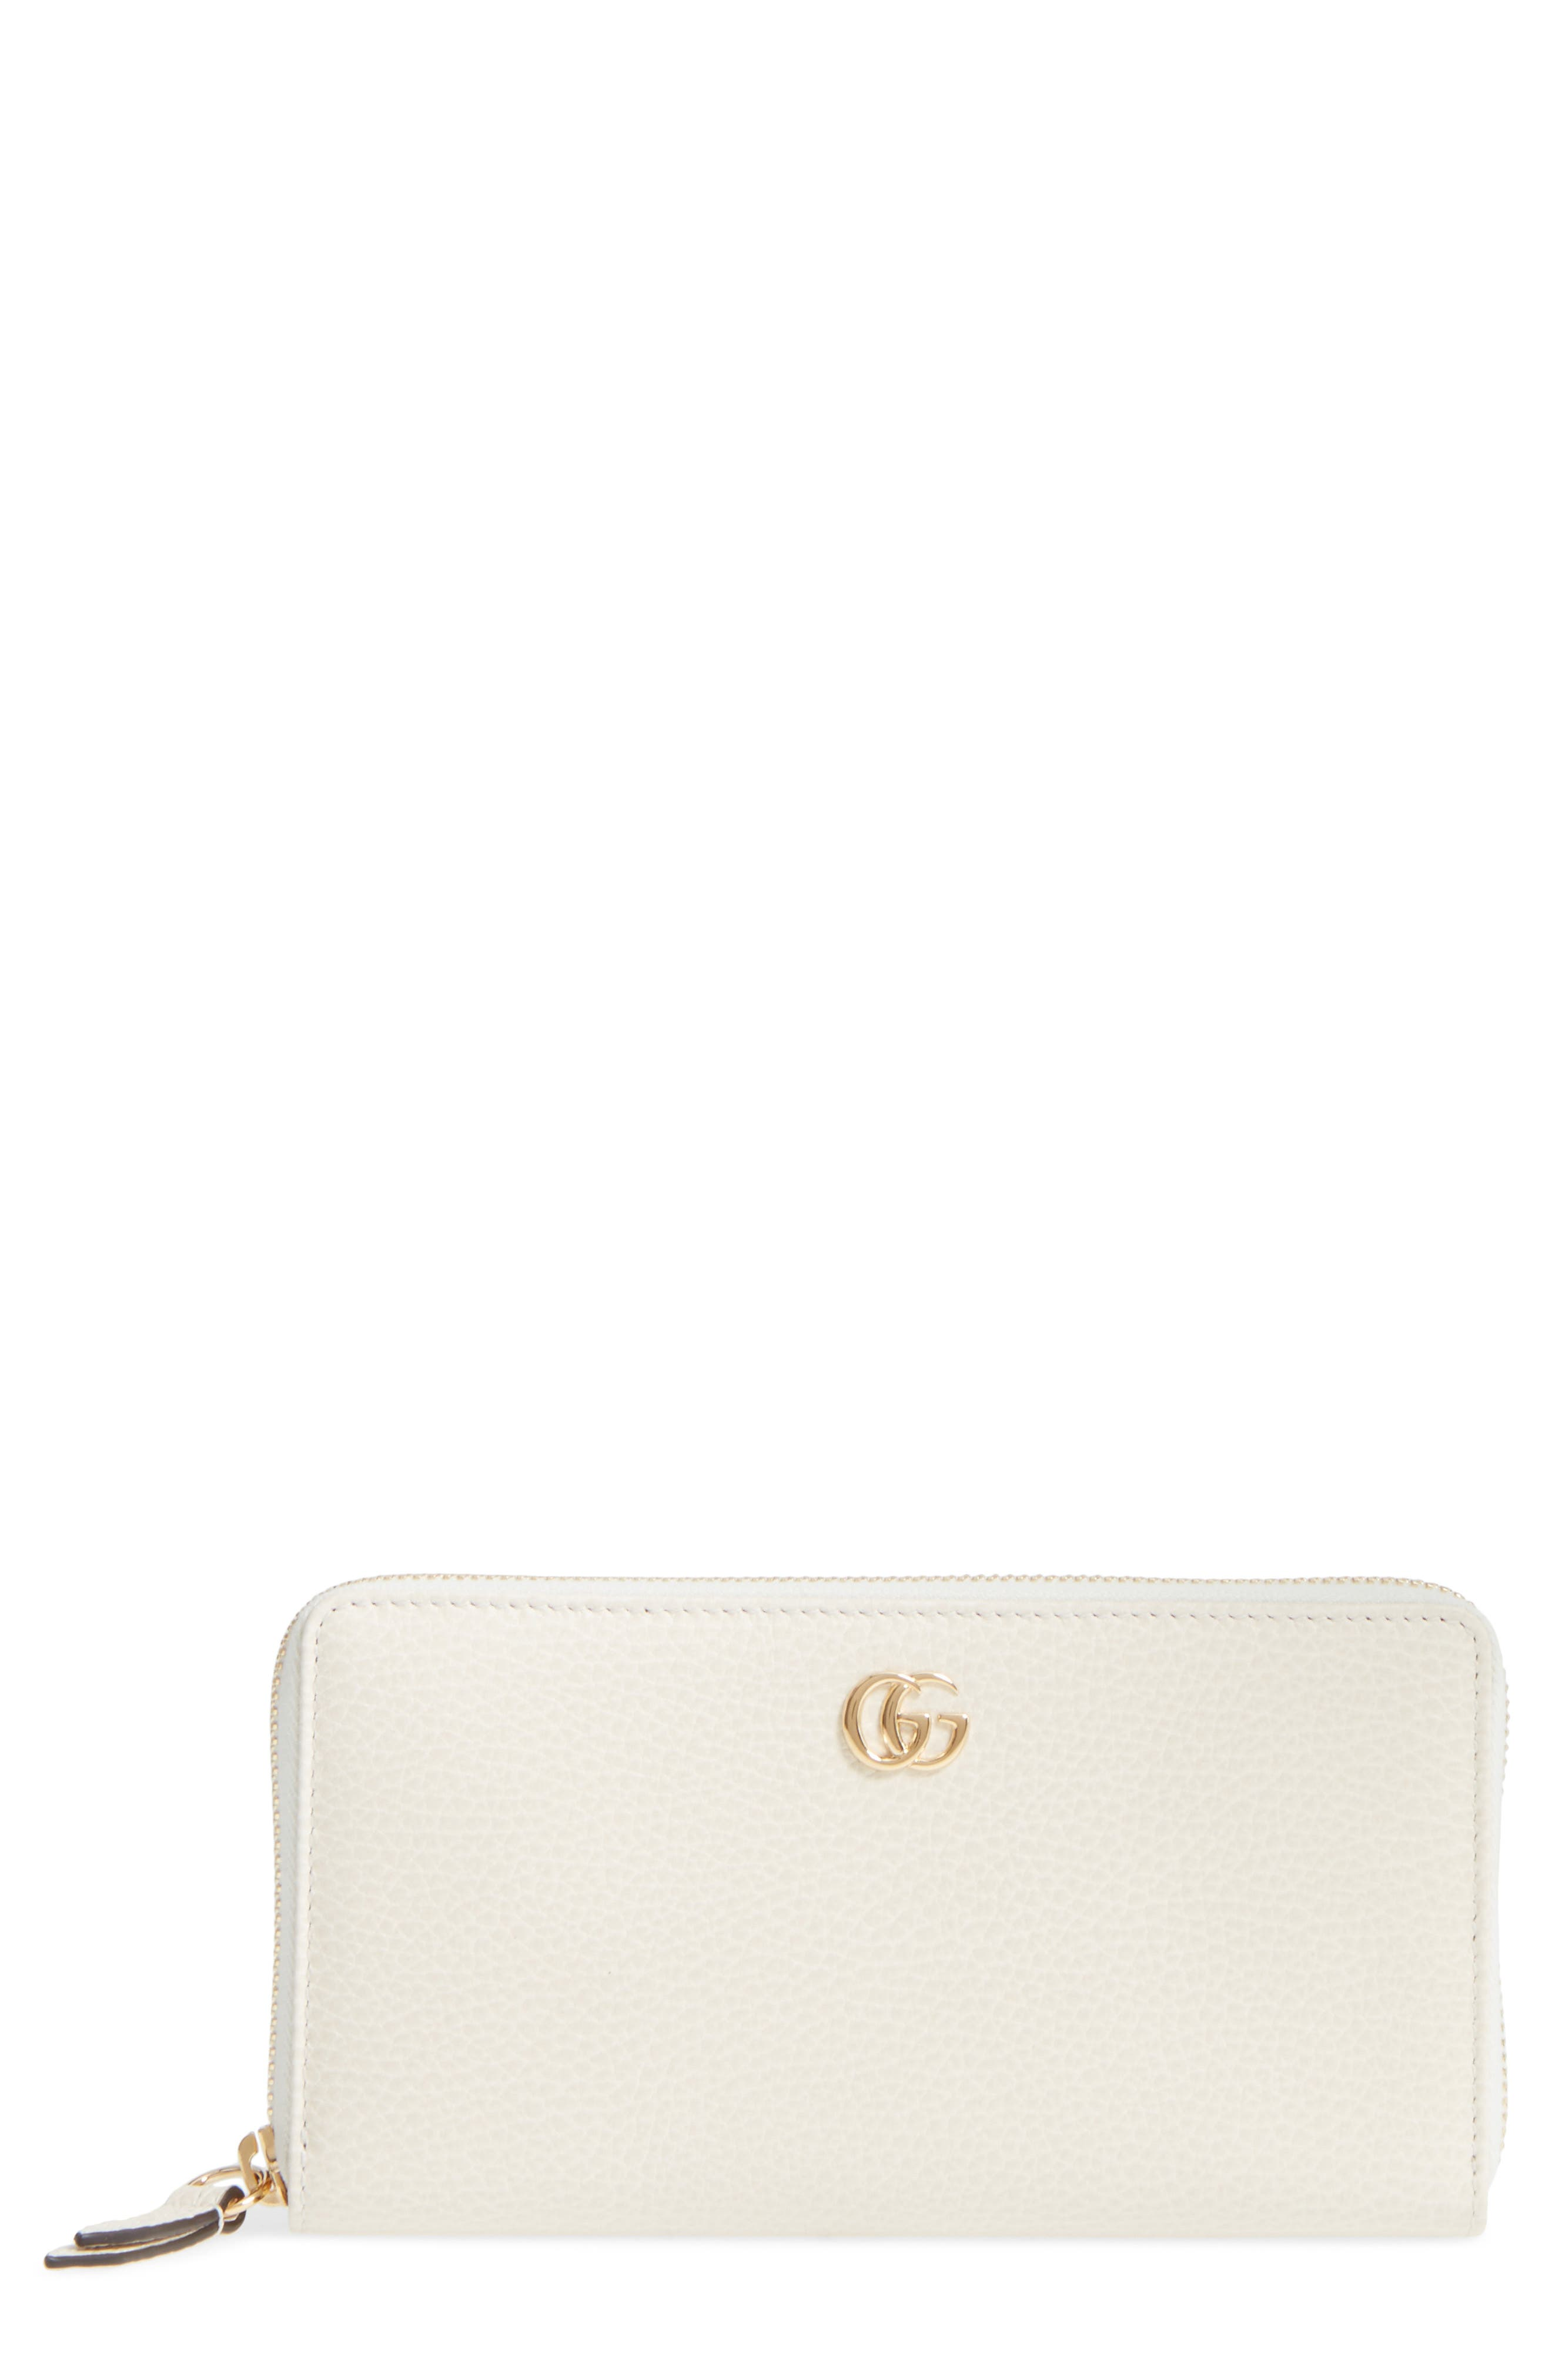 Main Image - Gucci Petite Marmont Leather Zip Around Wallet